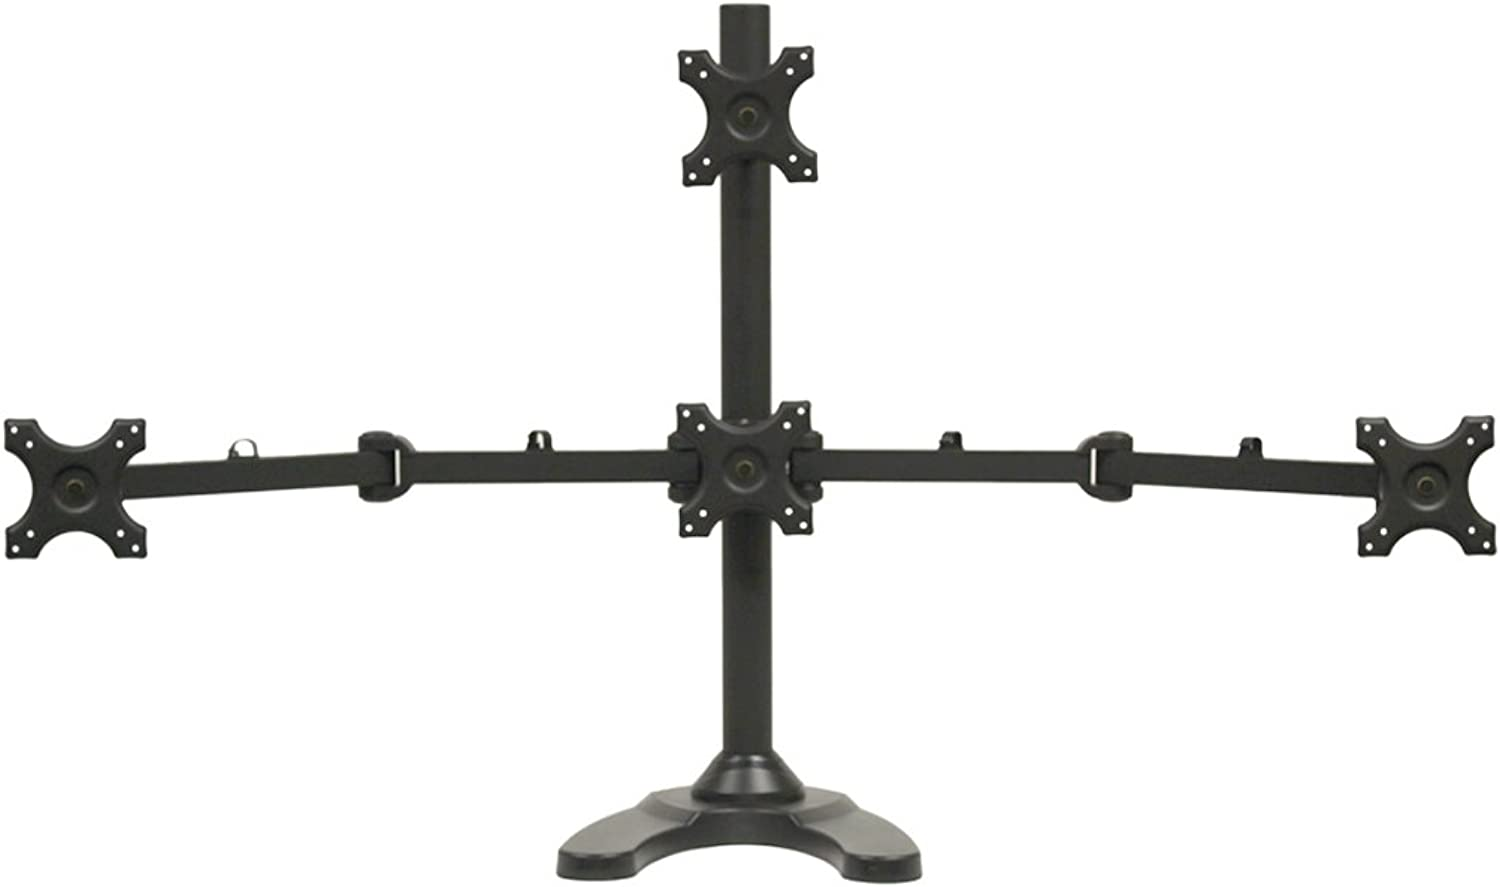 NavePoint Quad LCD Monitor Stand Mount Free Standing Adjustable 4 (1 + 3) up to 24